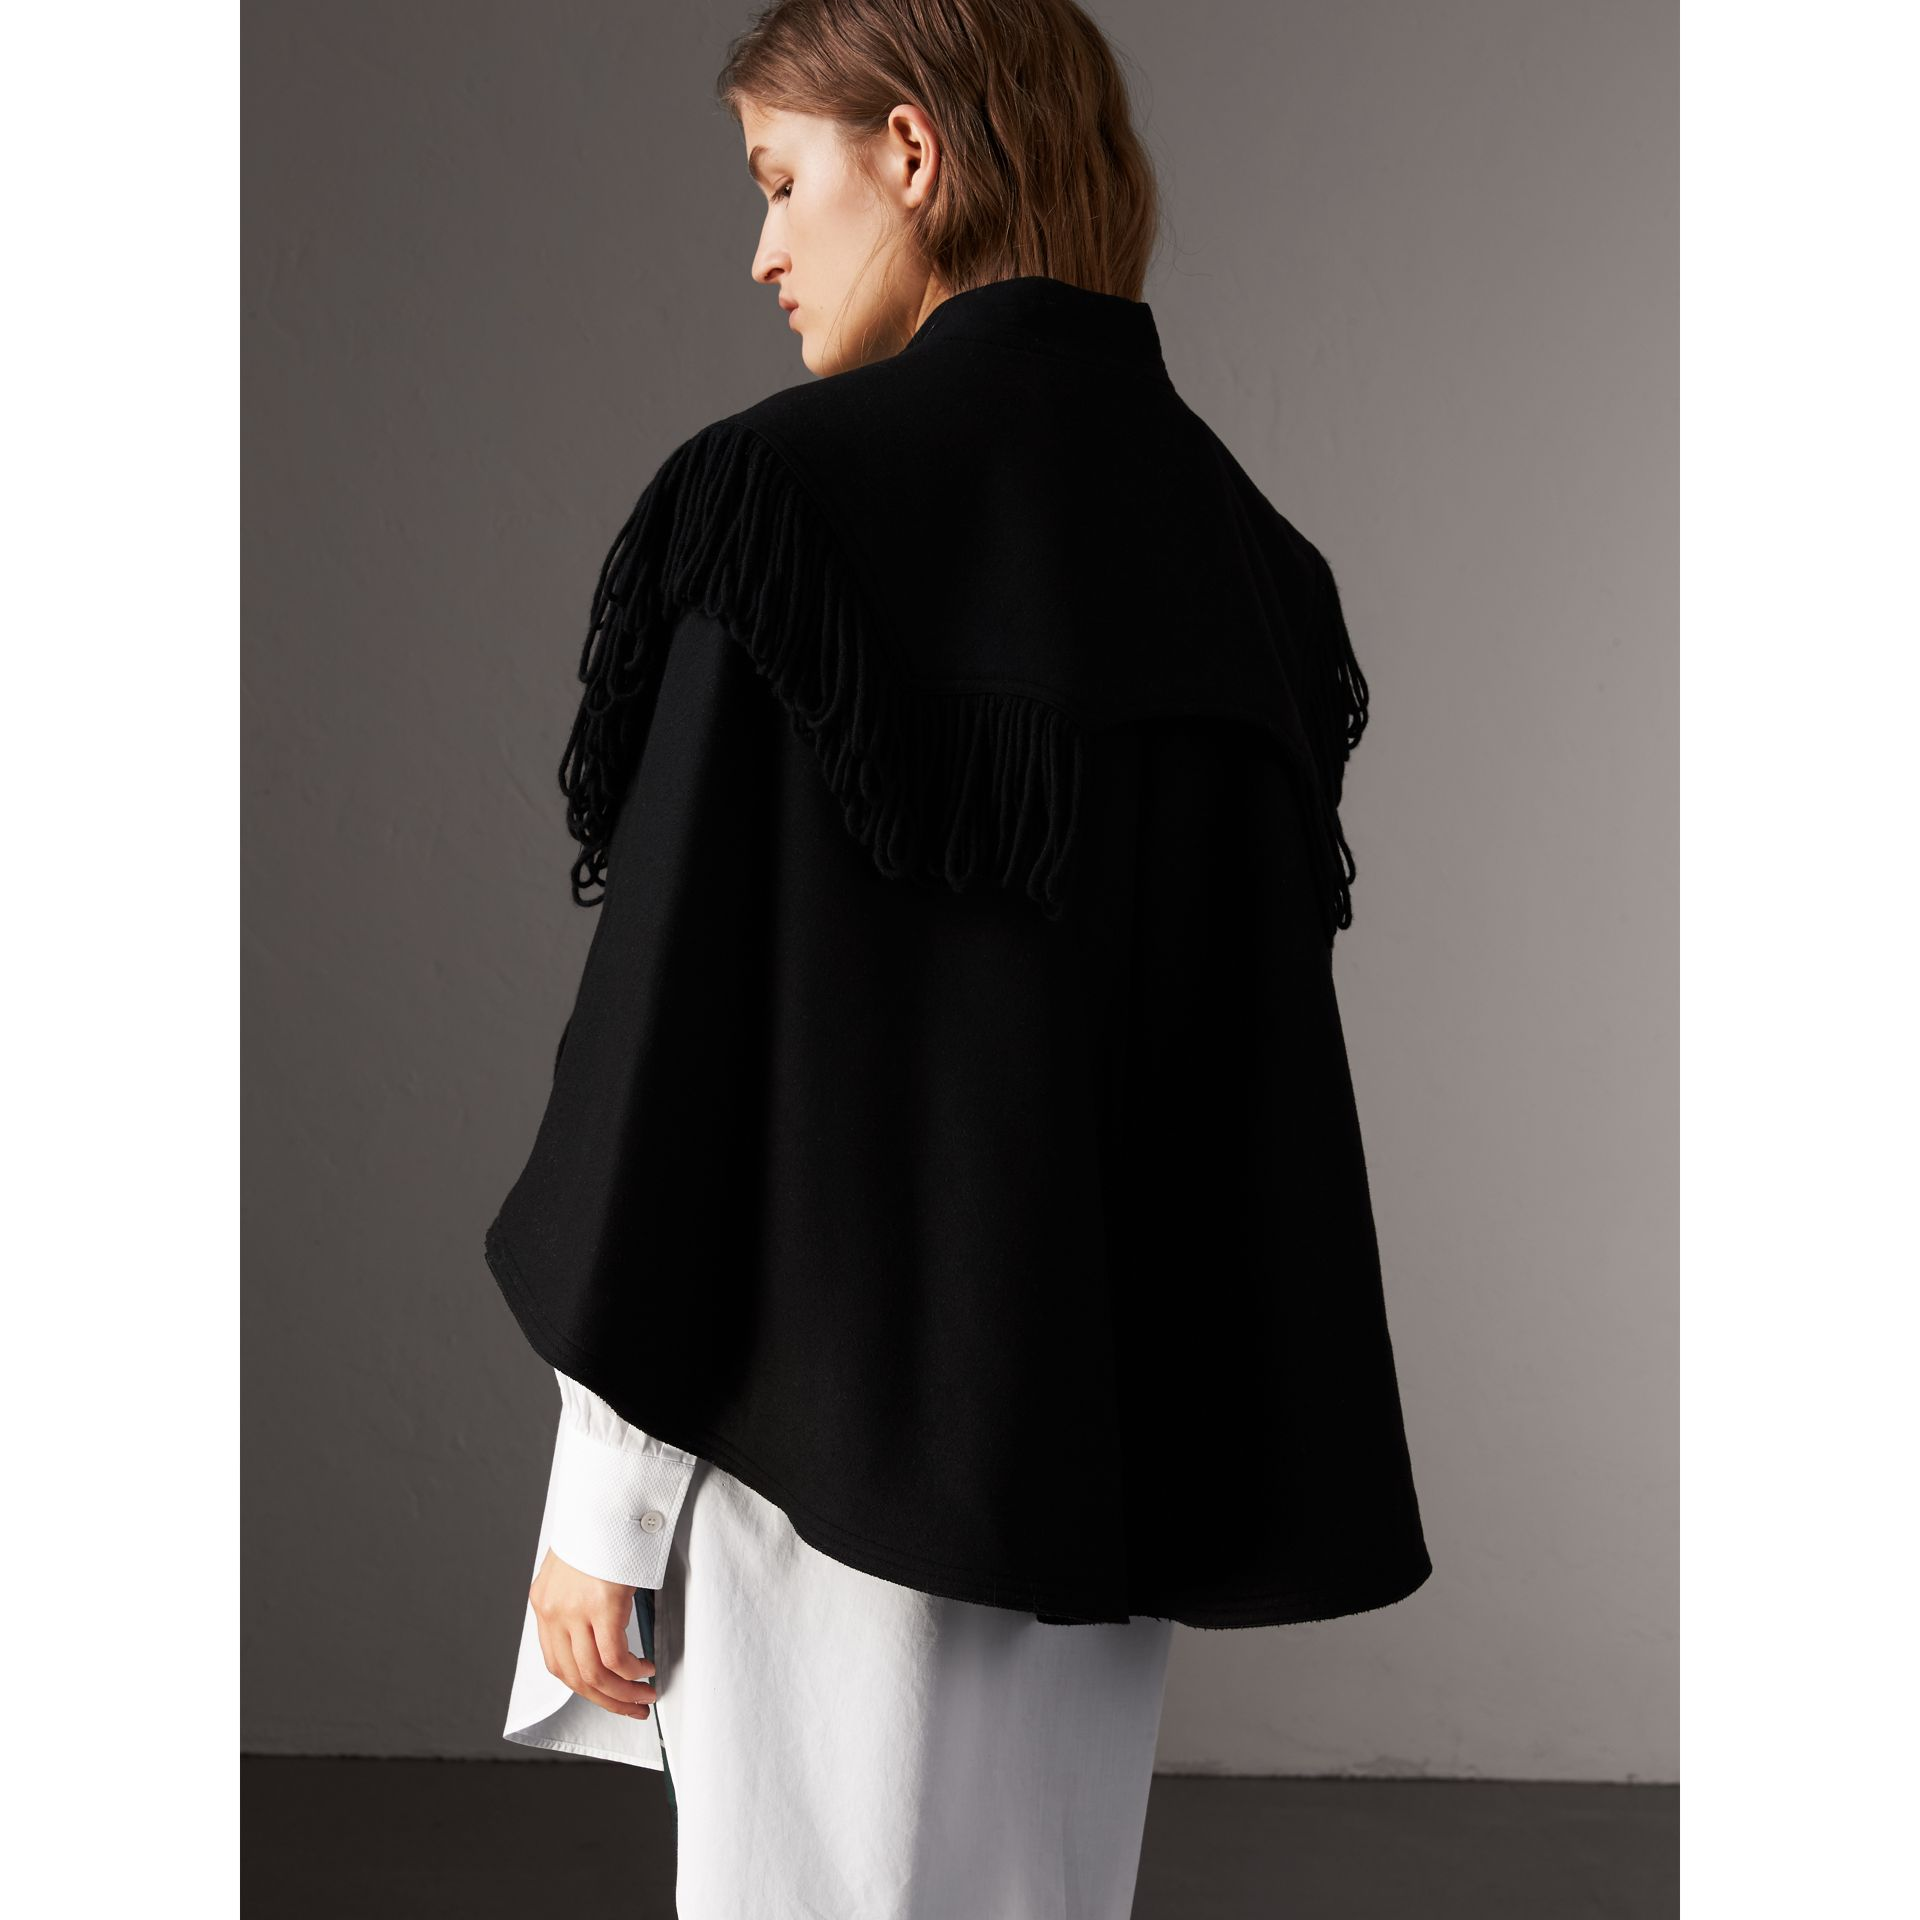 Fringed Wool Blend Military Cape in Black - Women | Burberry United States - gallery image 2